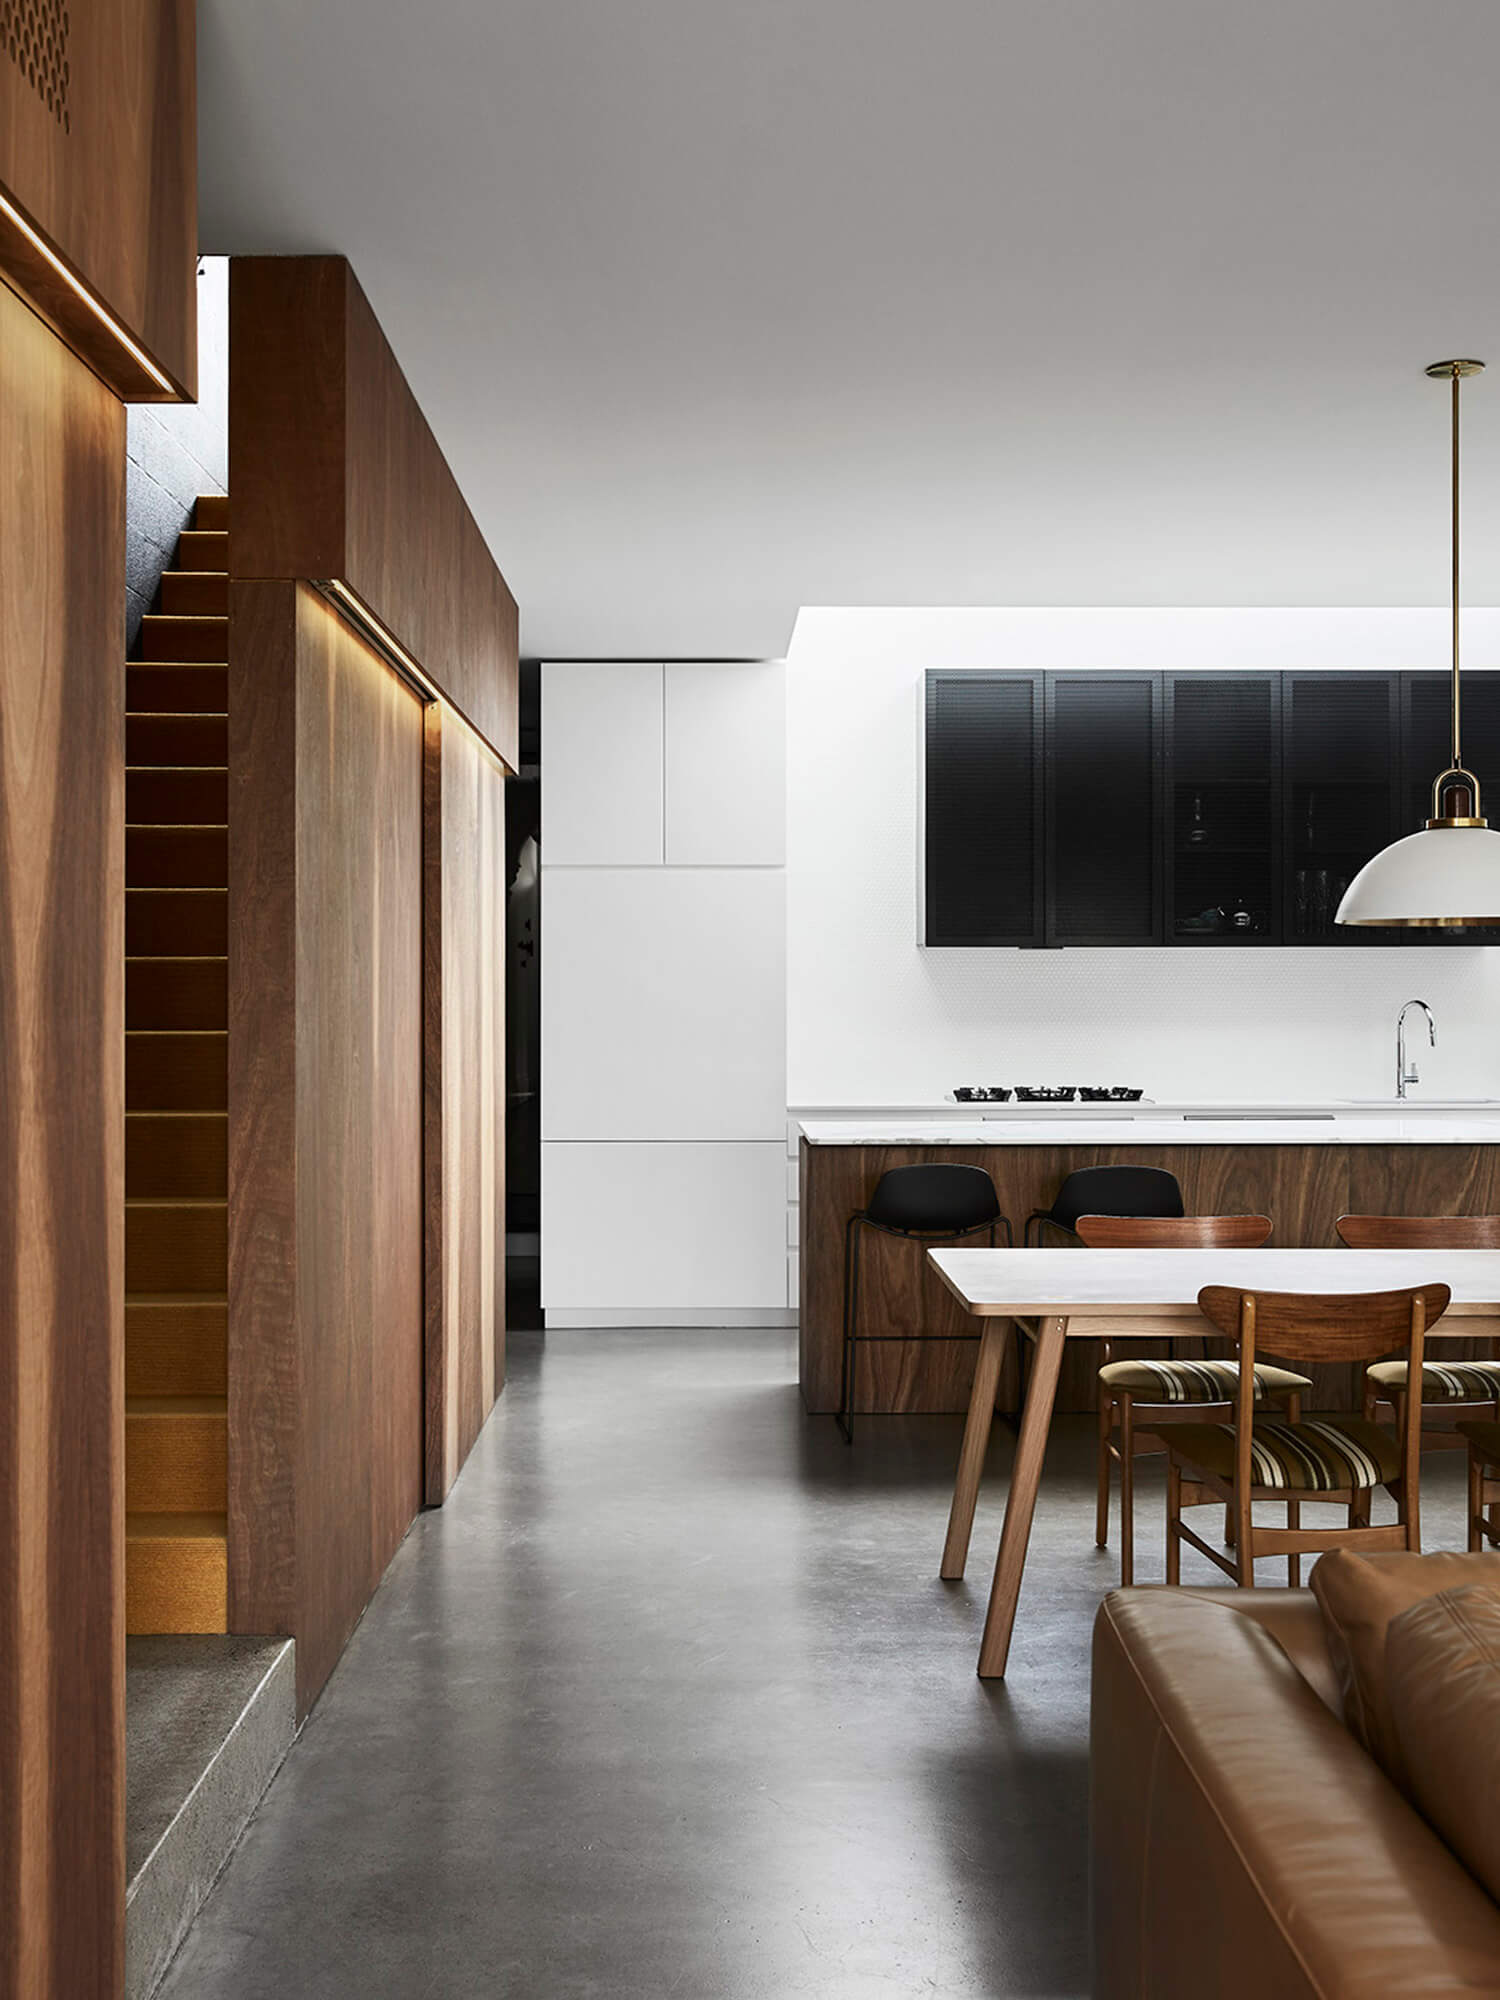 est living interiors TaylorKnights Northcote House 04